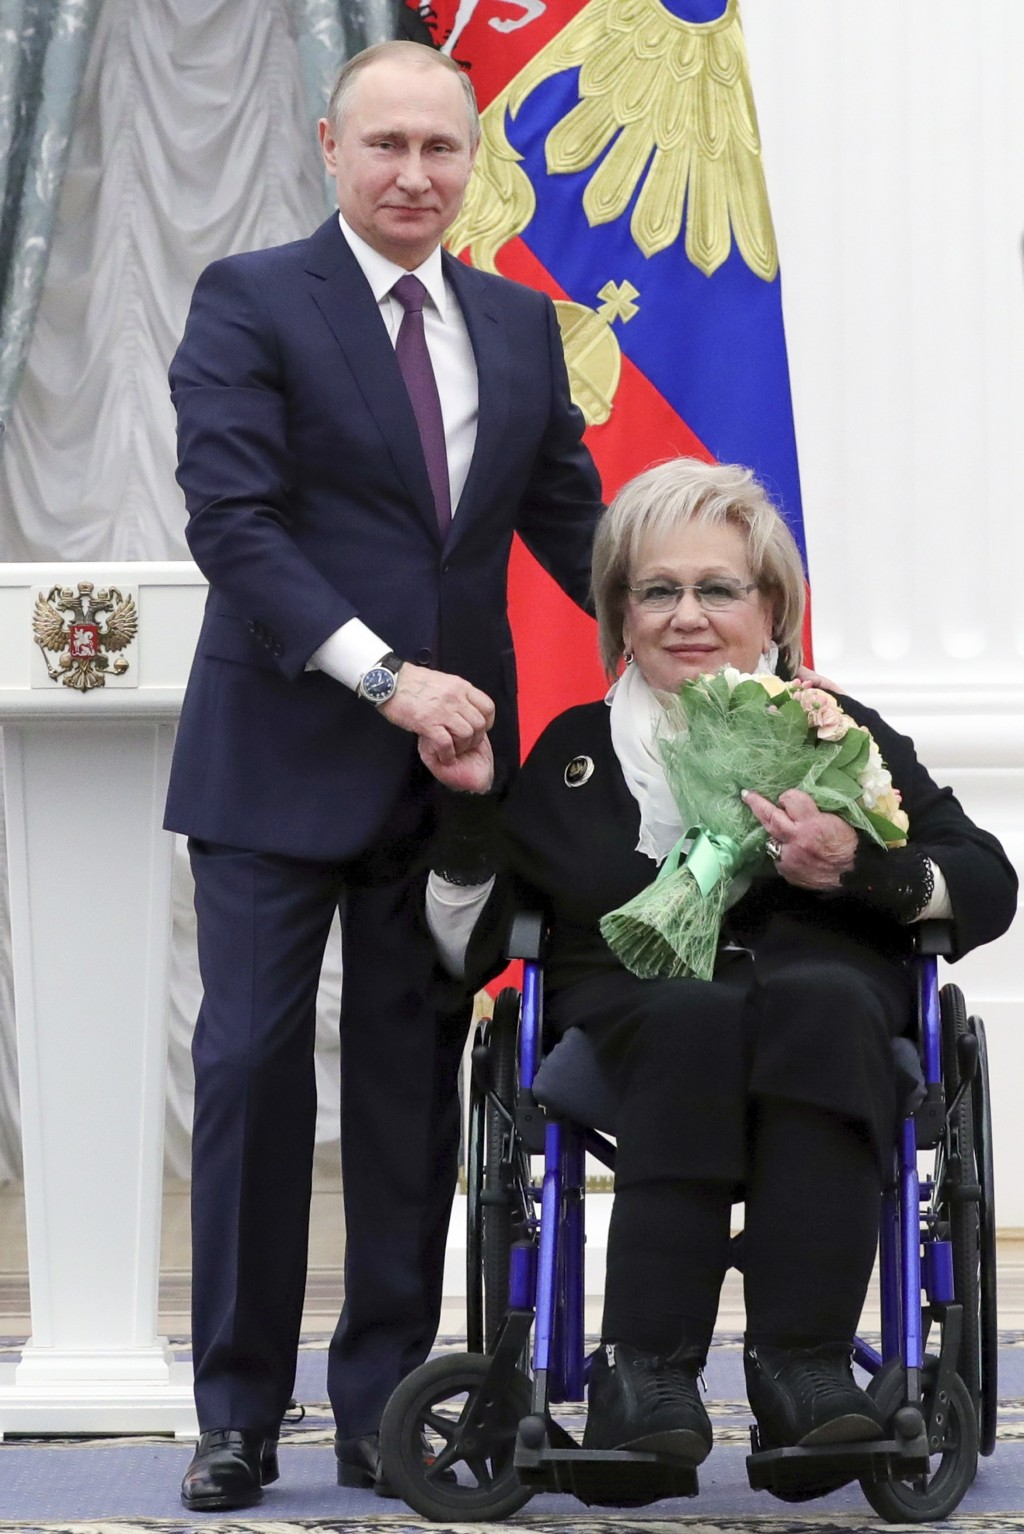 FILE - In this Friday, April 28, 2017 file photo, Russian President Vladimir Putin presents a medal to art director of the Sovremennik theater Galina ...